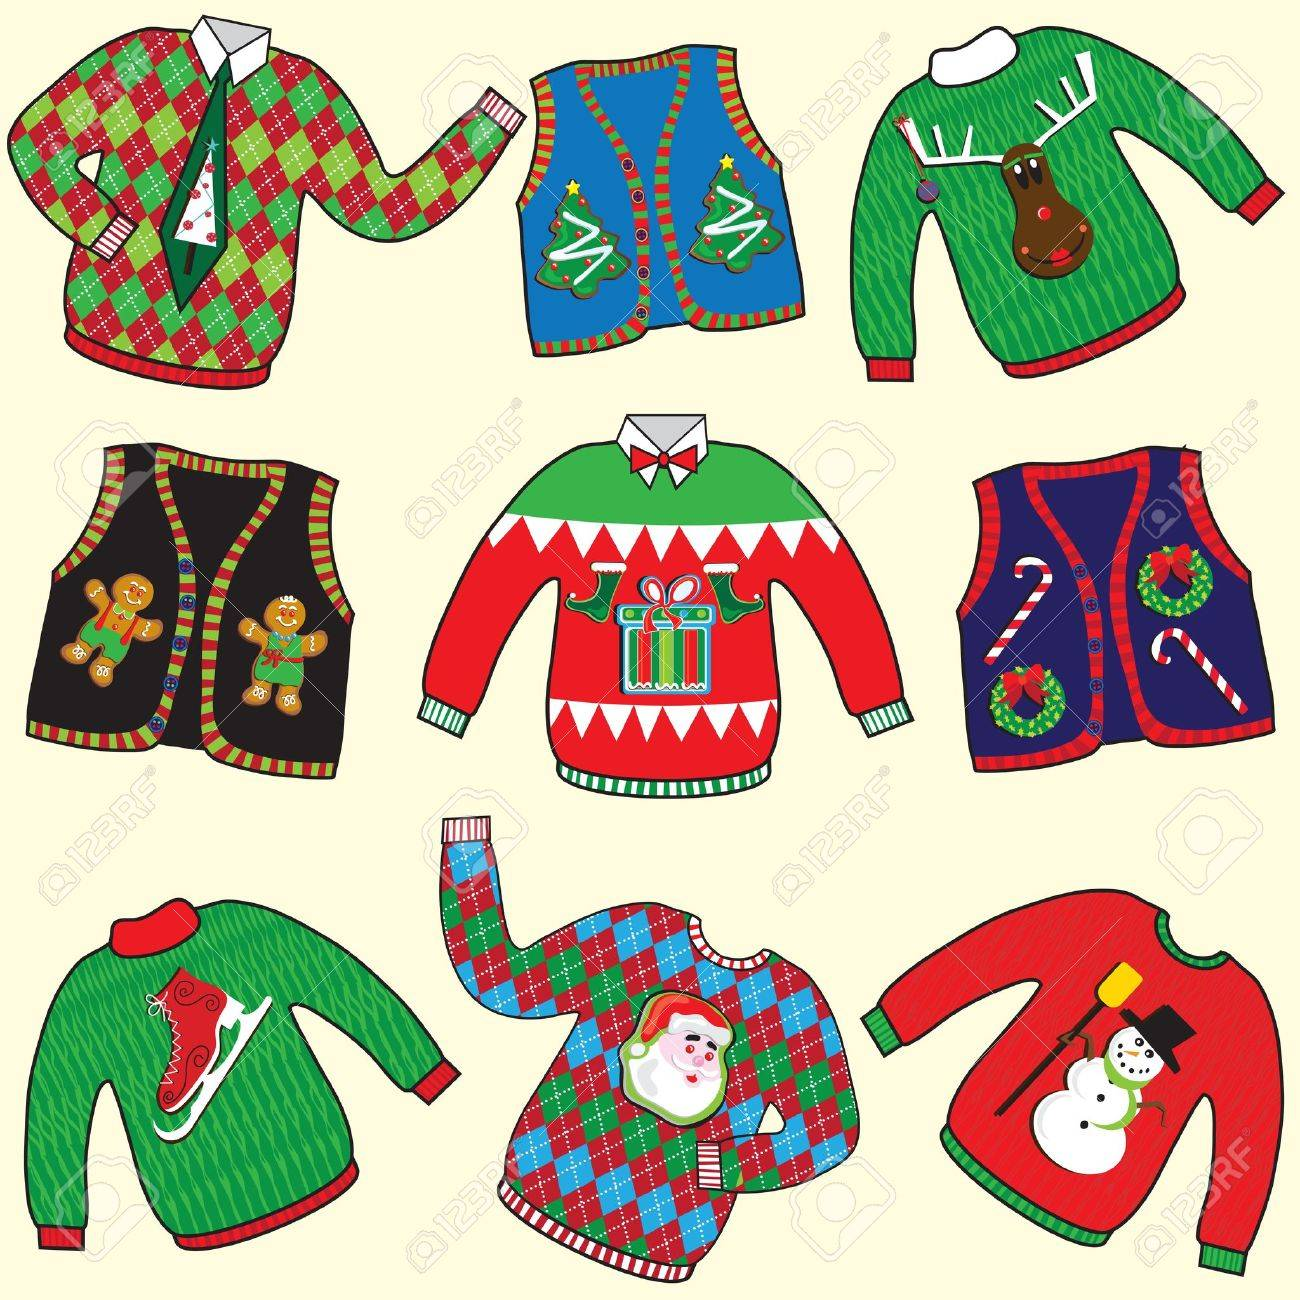 240c12ebef UGLY Christmas Sweaters Party Invitation Royalty Free Cliparts ...